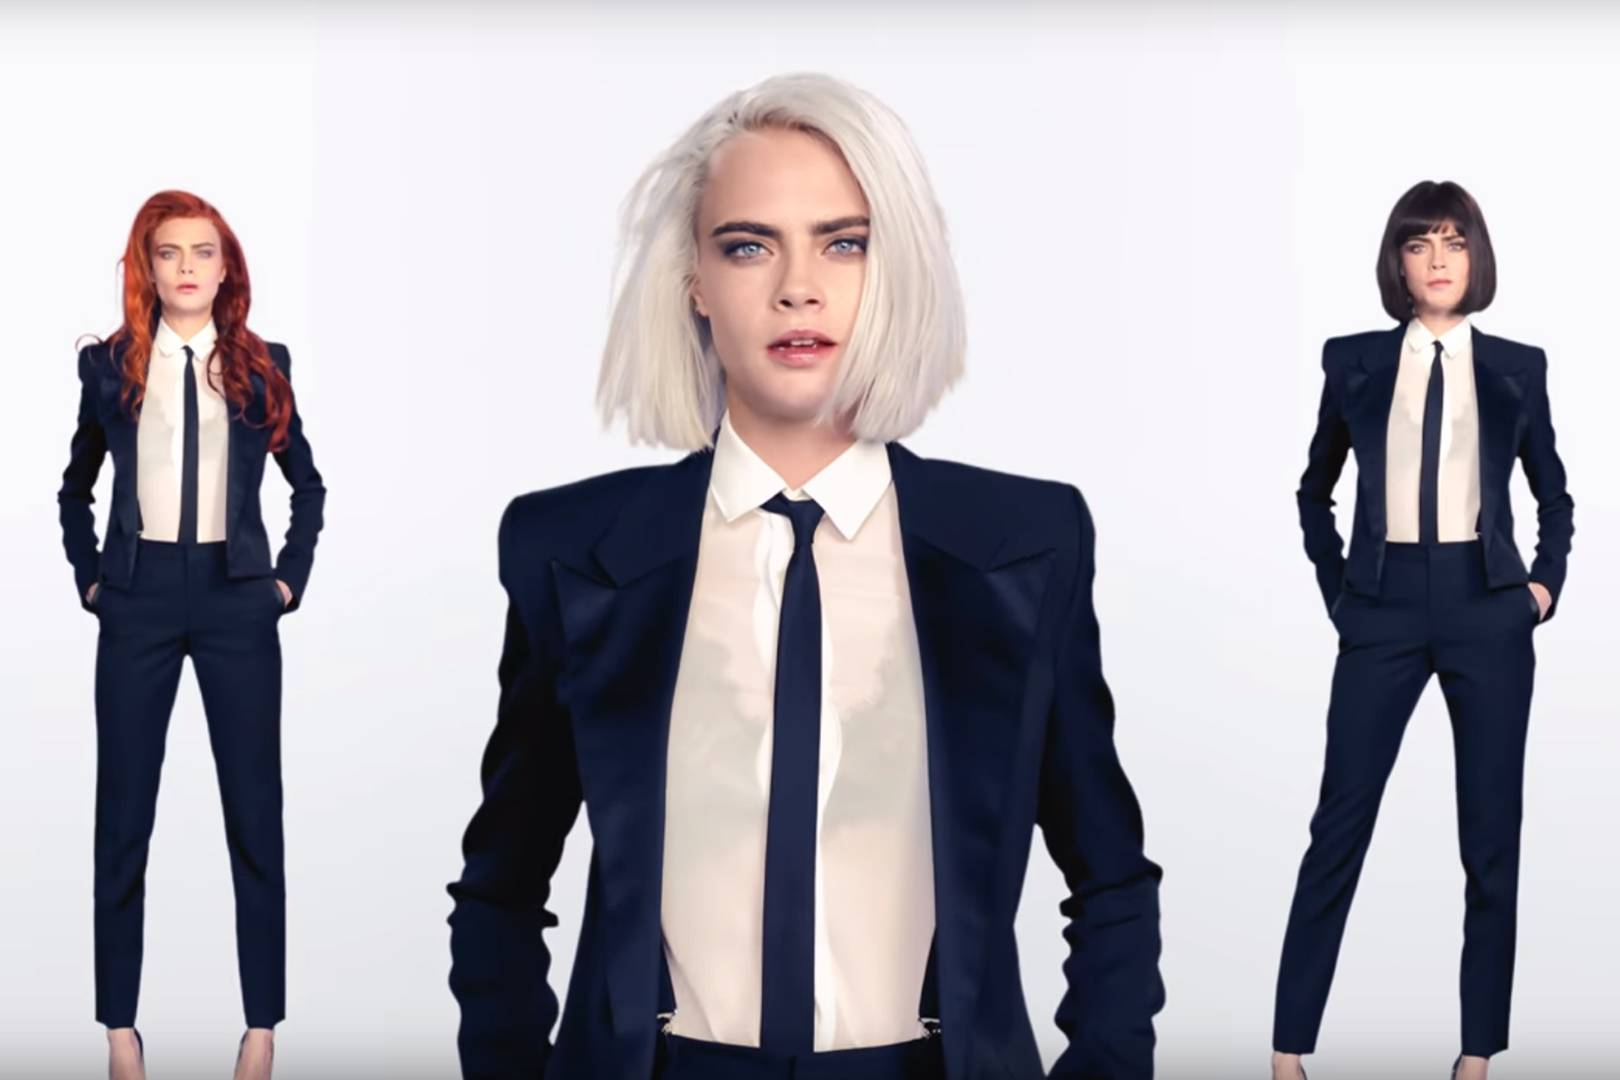 MORE: Cara Delevingne's First Song Is Really, Really Good